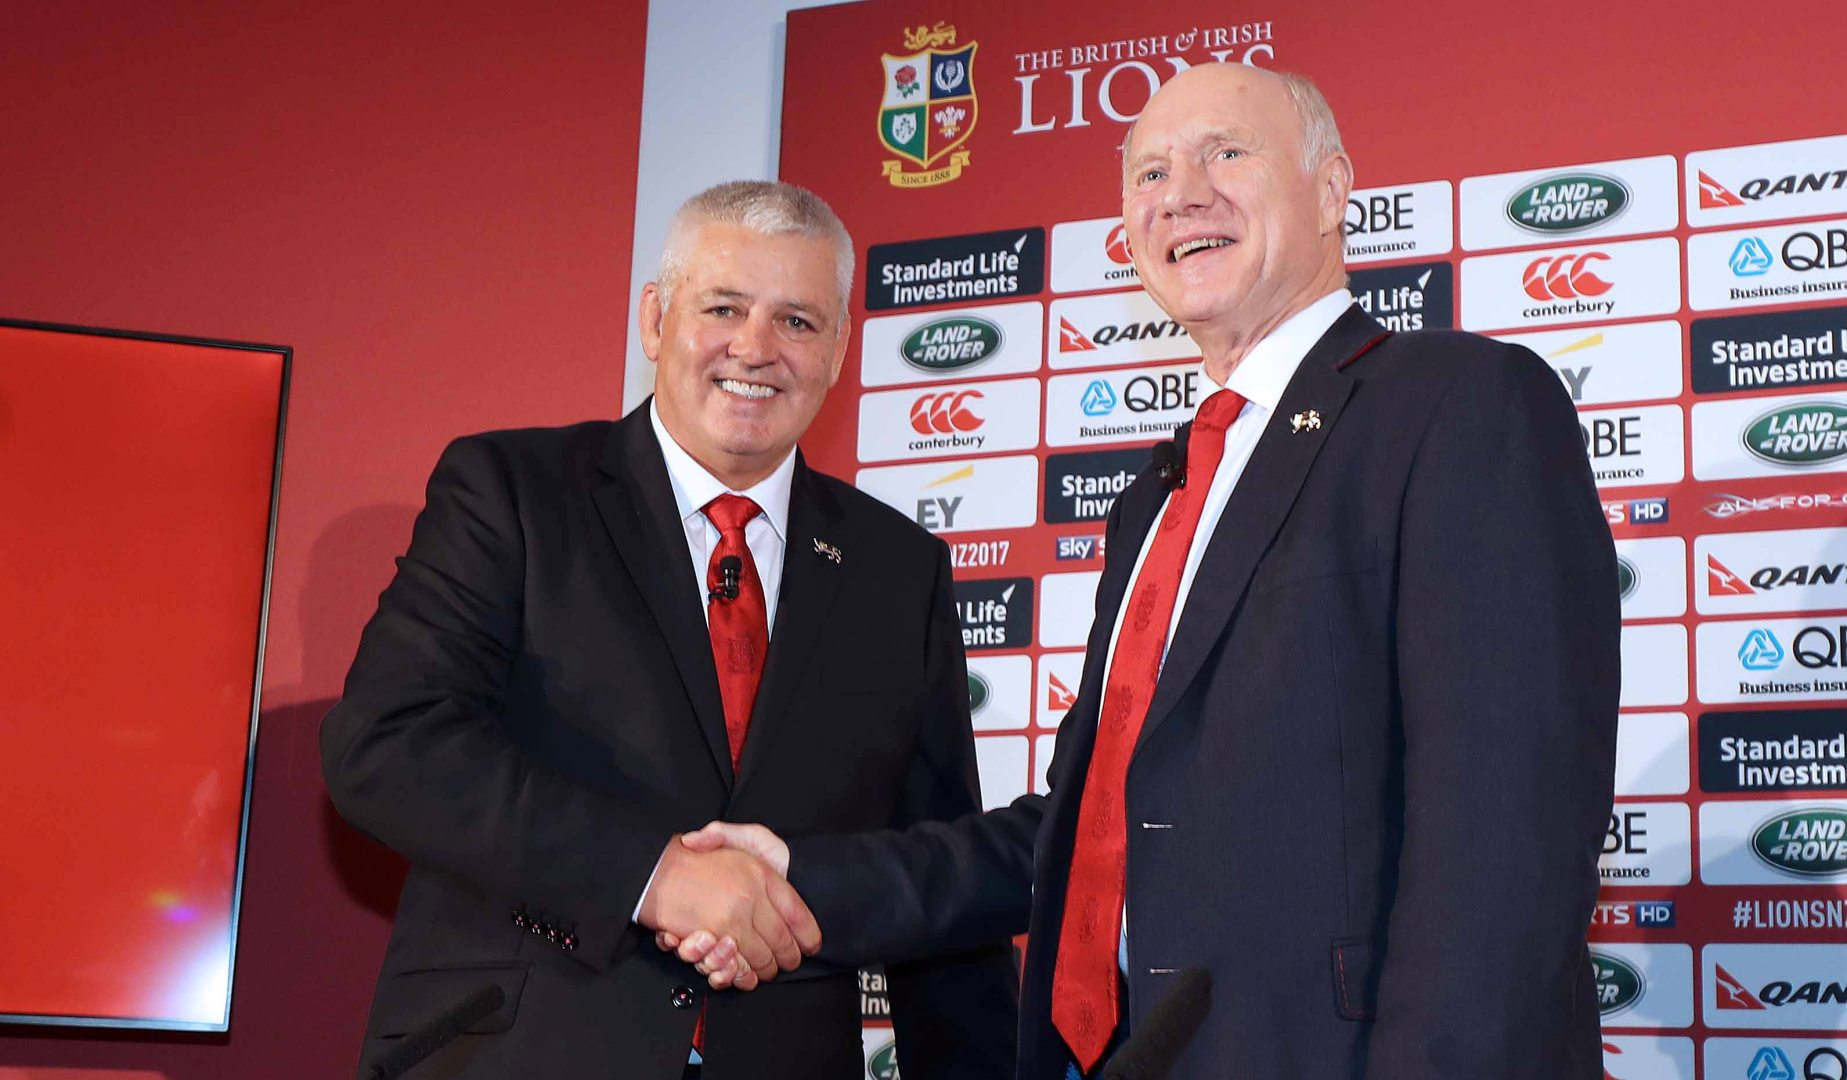 Watch The British & Irish Lions squad announcement LIVE